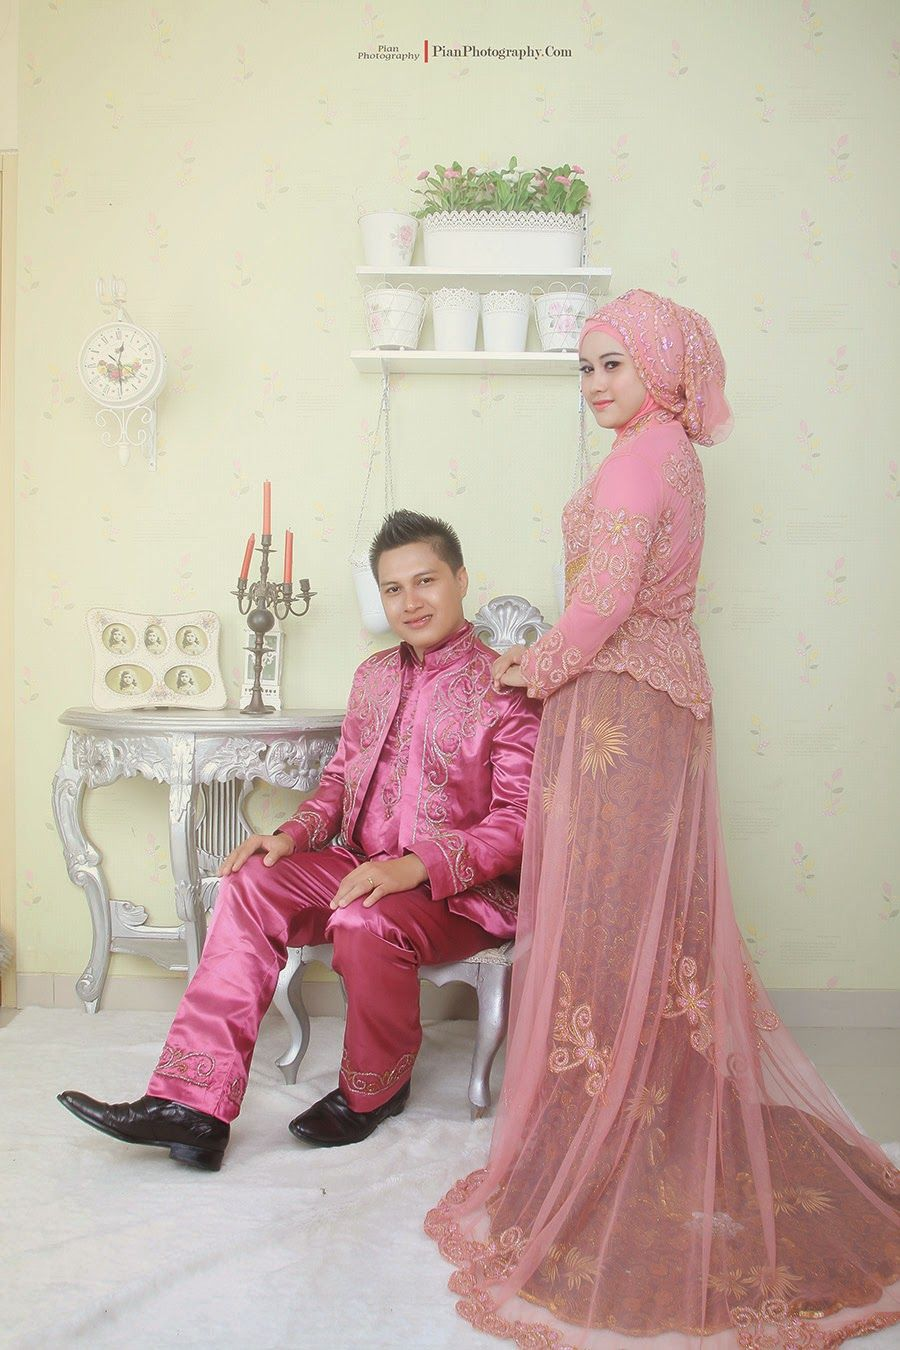 Prewedding Jakarta Indoor + Outdoor Pre wedding, Indoor